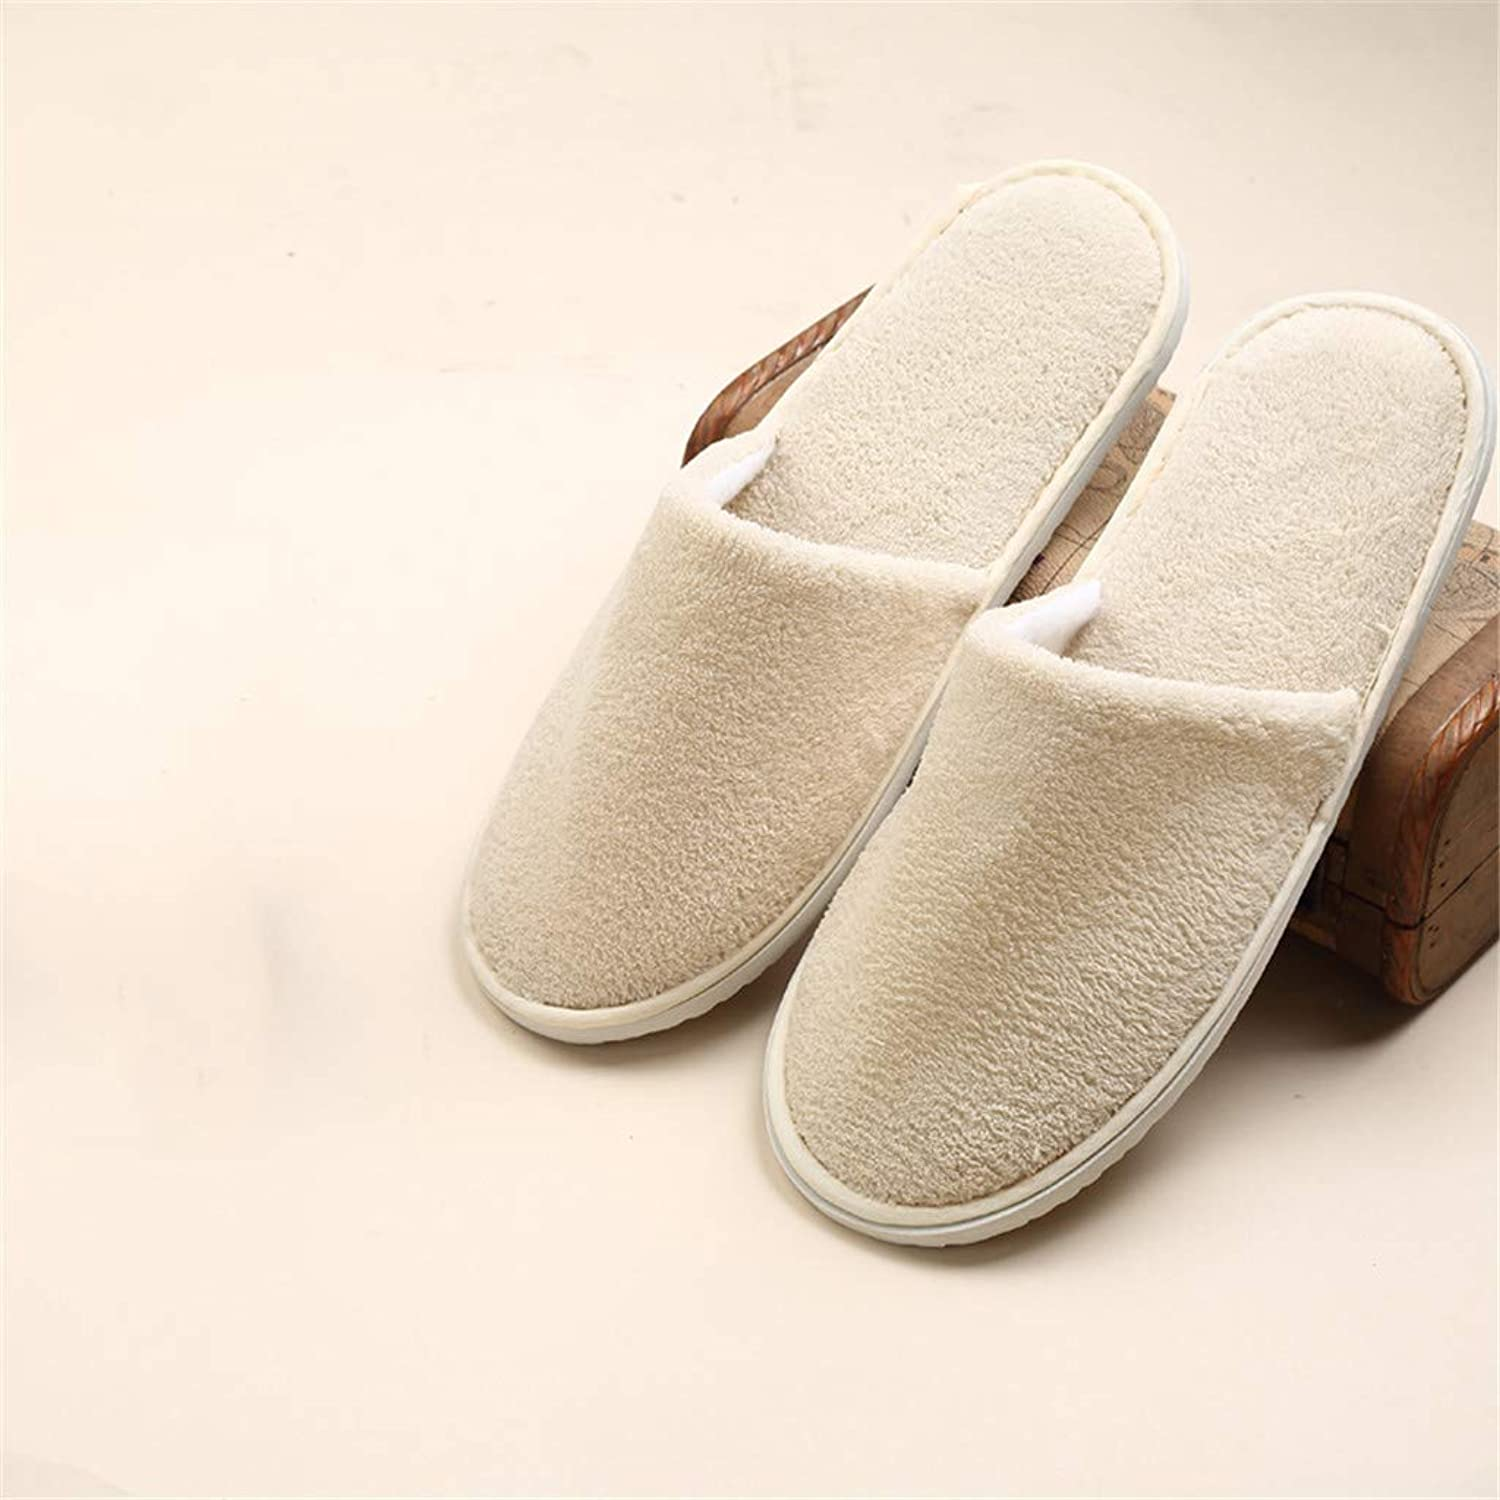 10 Pairs Disposable Spa Slippers - Coral Fleece Comfortable and Non-Slip - Perfect for Home, Hotel Commercial Use,Beige,Closed